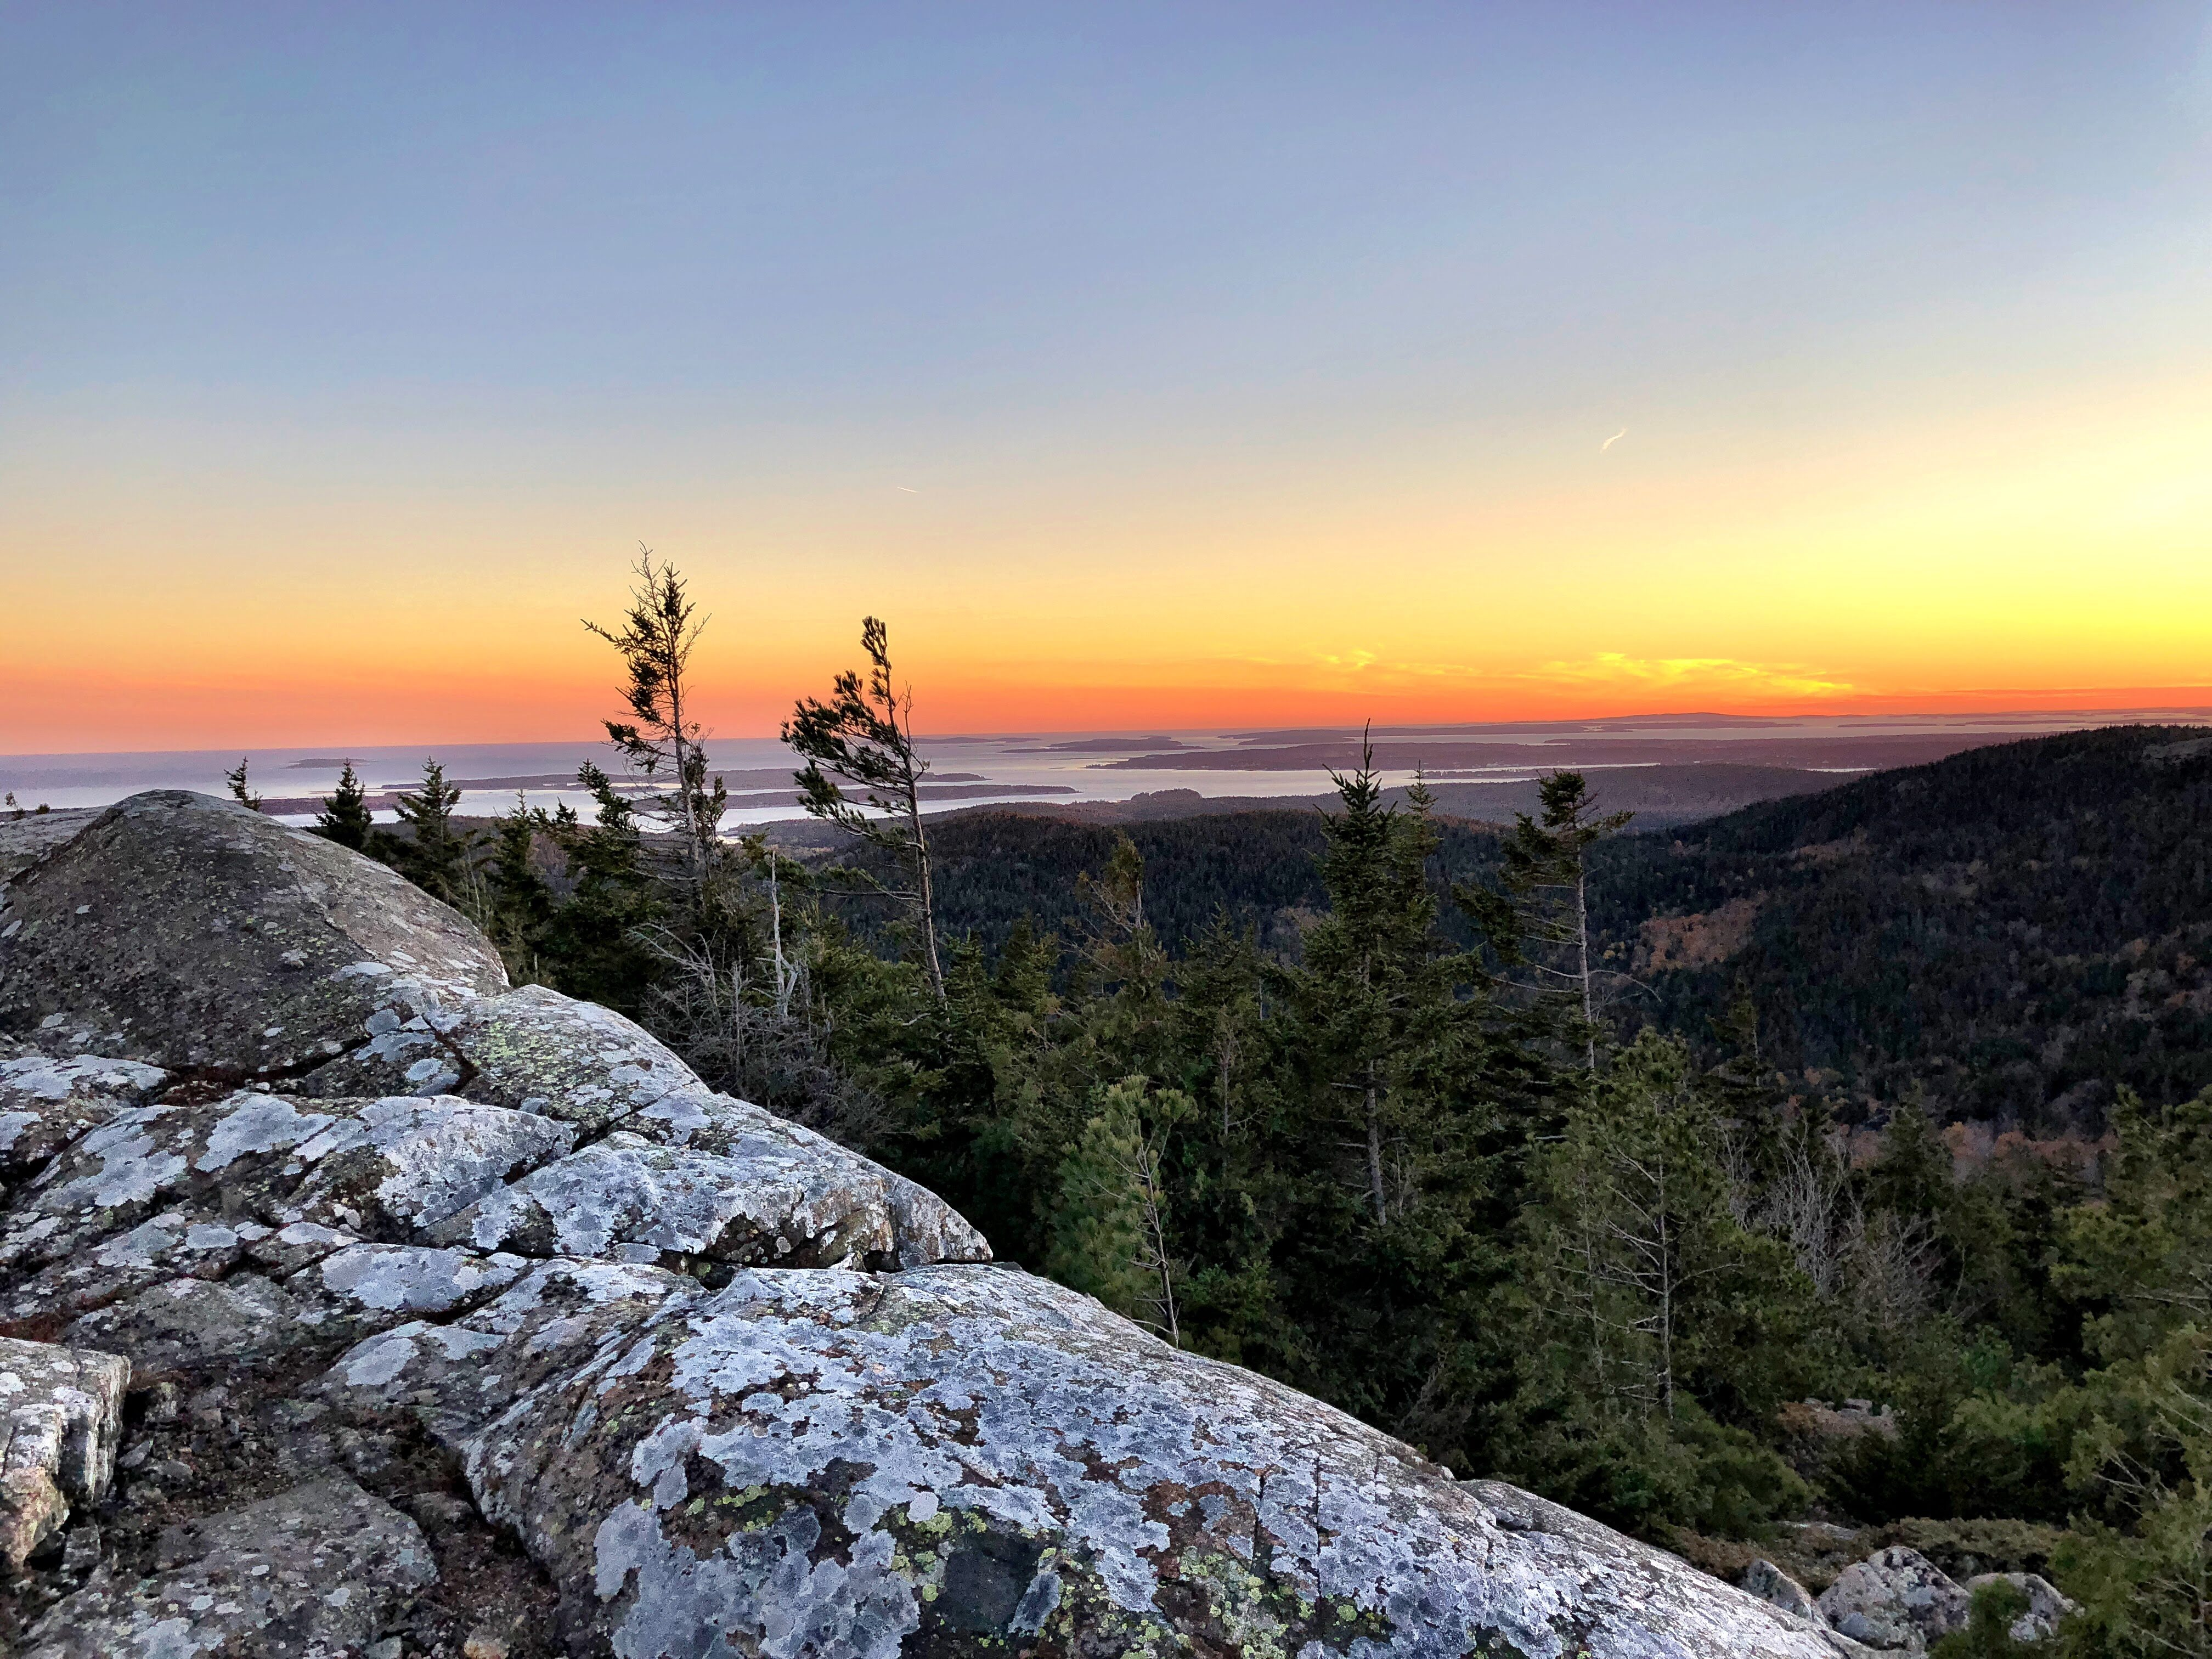 Sunset in Acadia NP